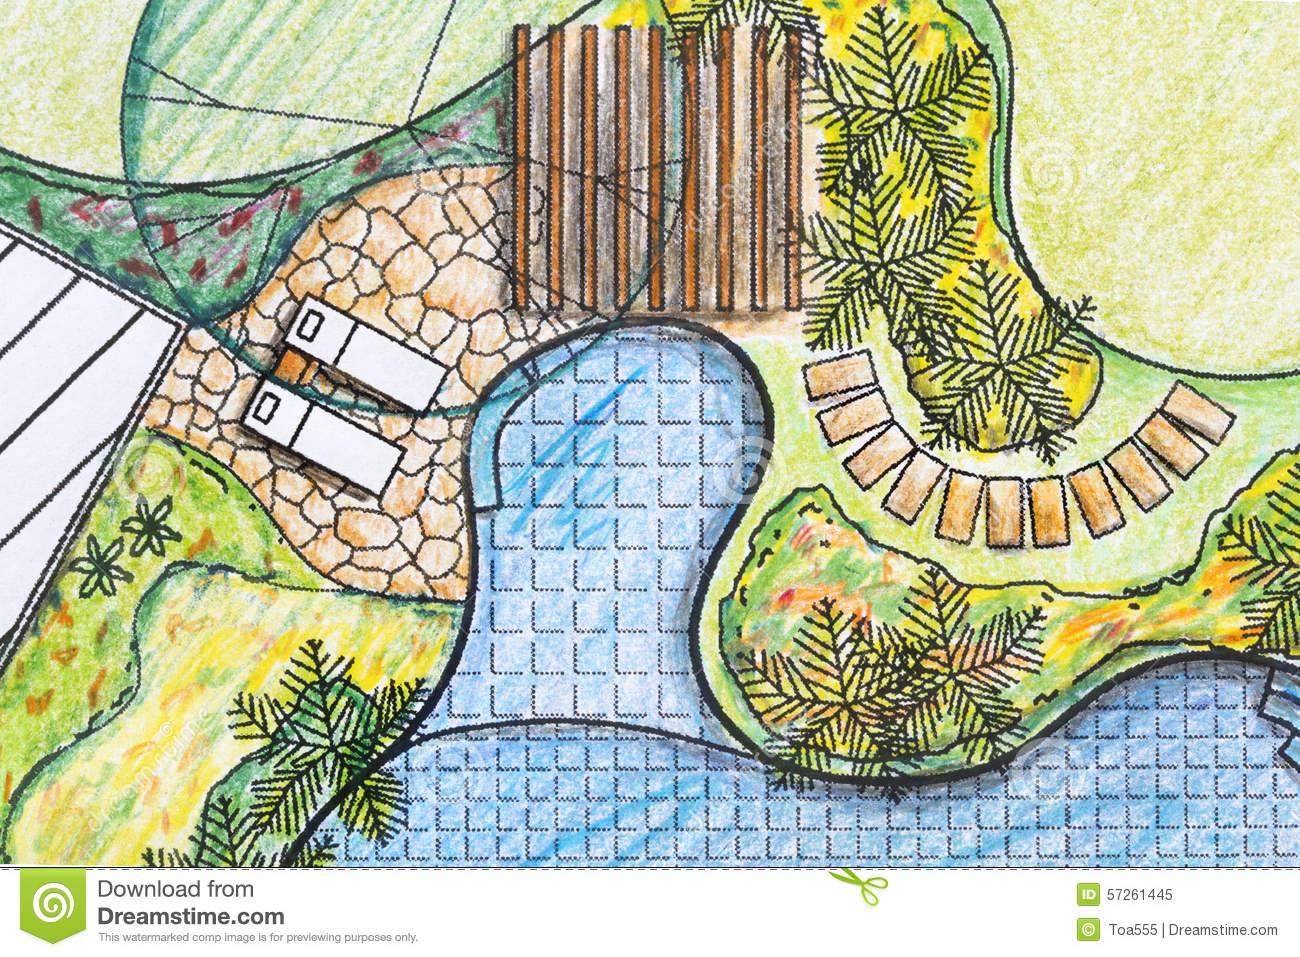 Garden Design Kids garden design: garden design with backyard landscape design plans